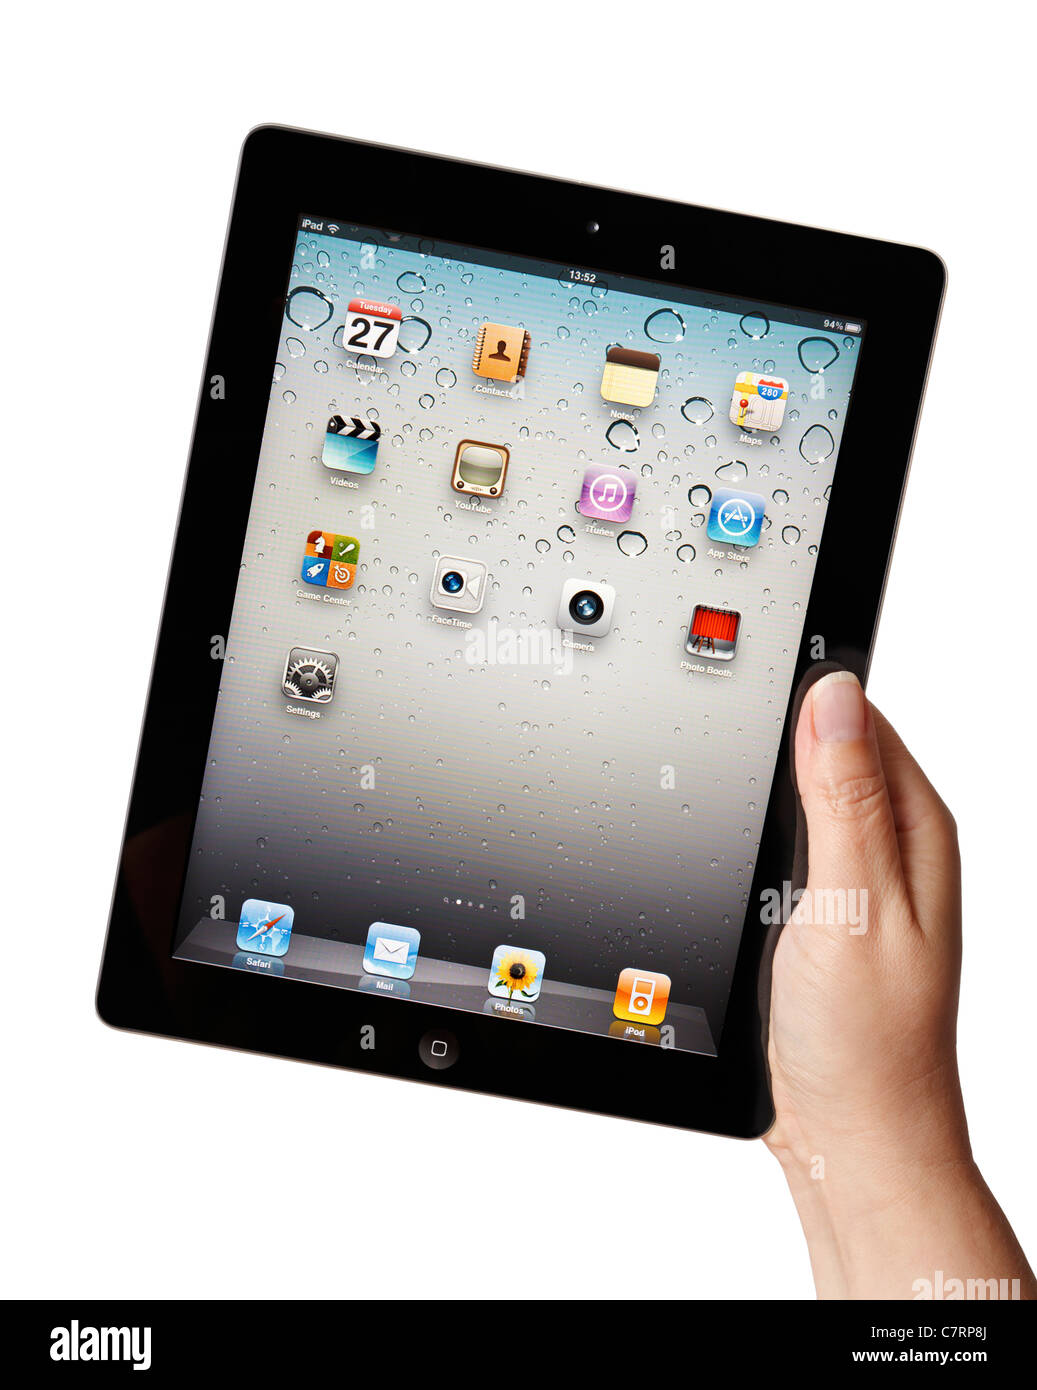 Hand holding iPad showing applications menu screen - Stock Image